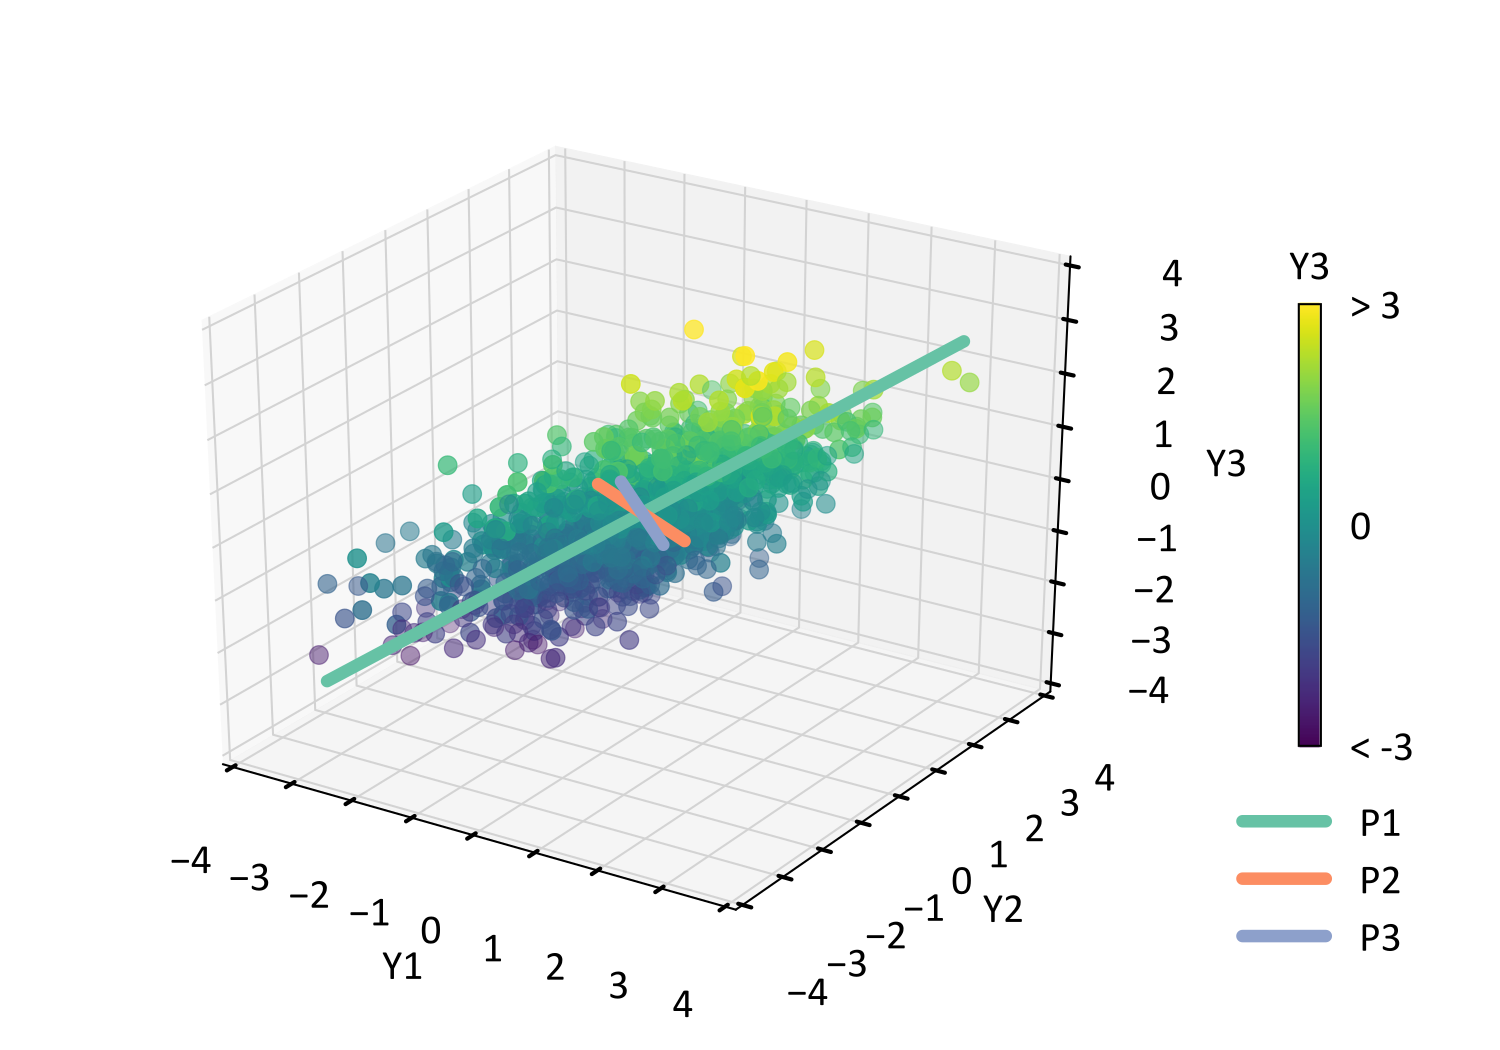 Scatter plot of the original data with the orientation (eigenvector) and magnitude (eigenvalue) of the principal components overlain.